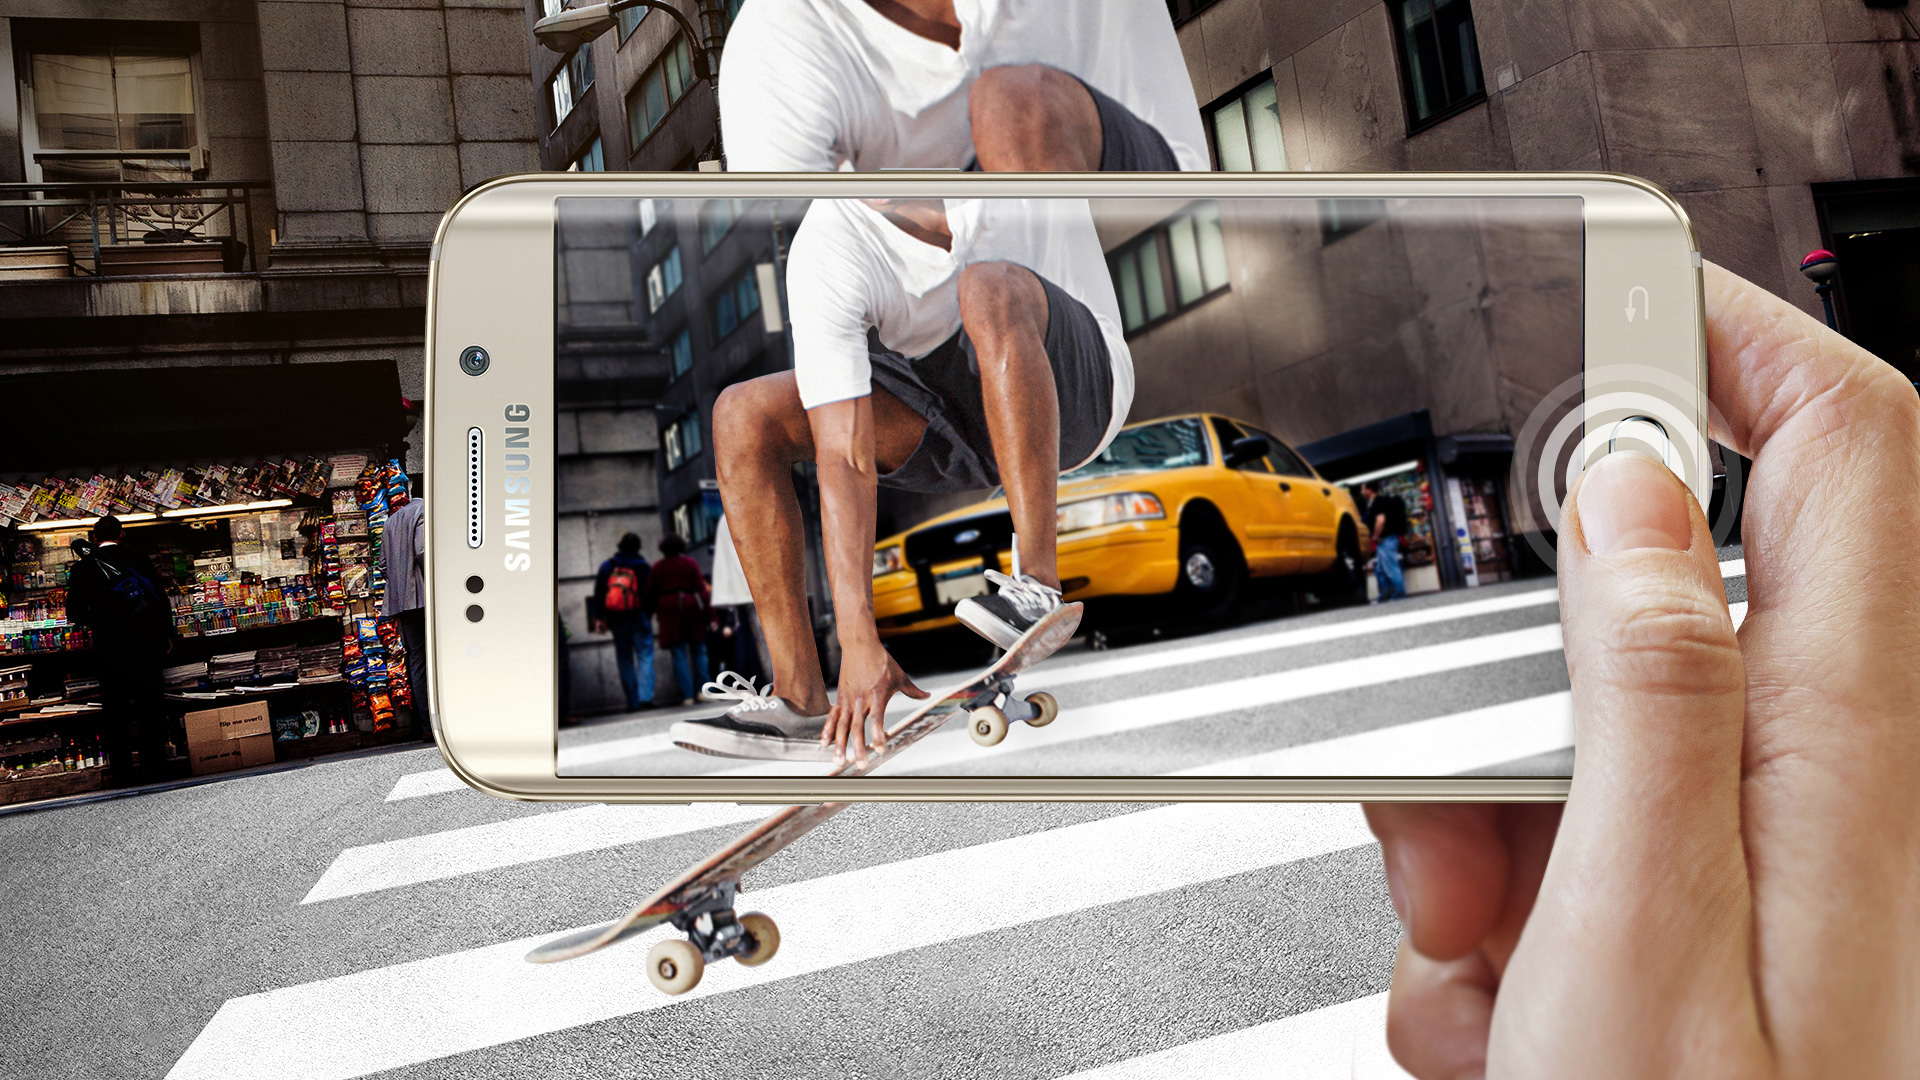 s6-image-quality-the-tech-news